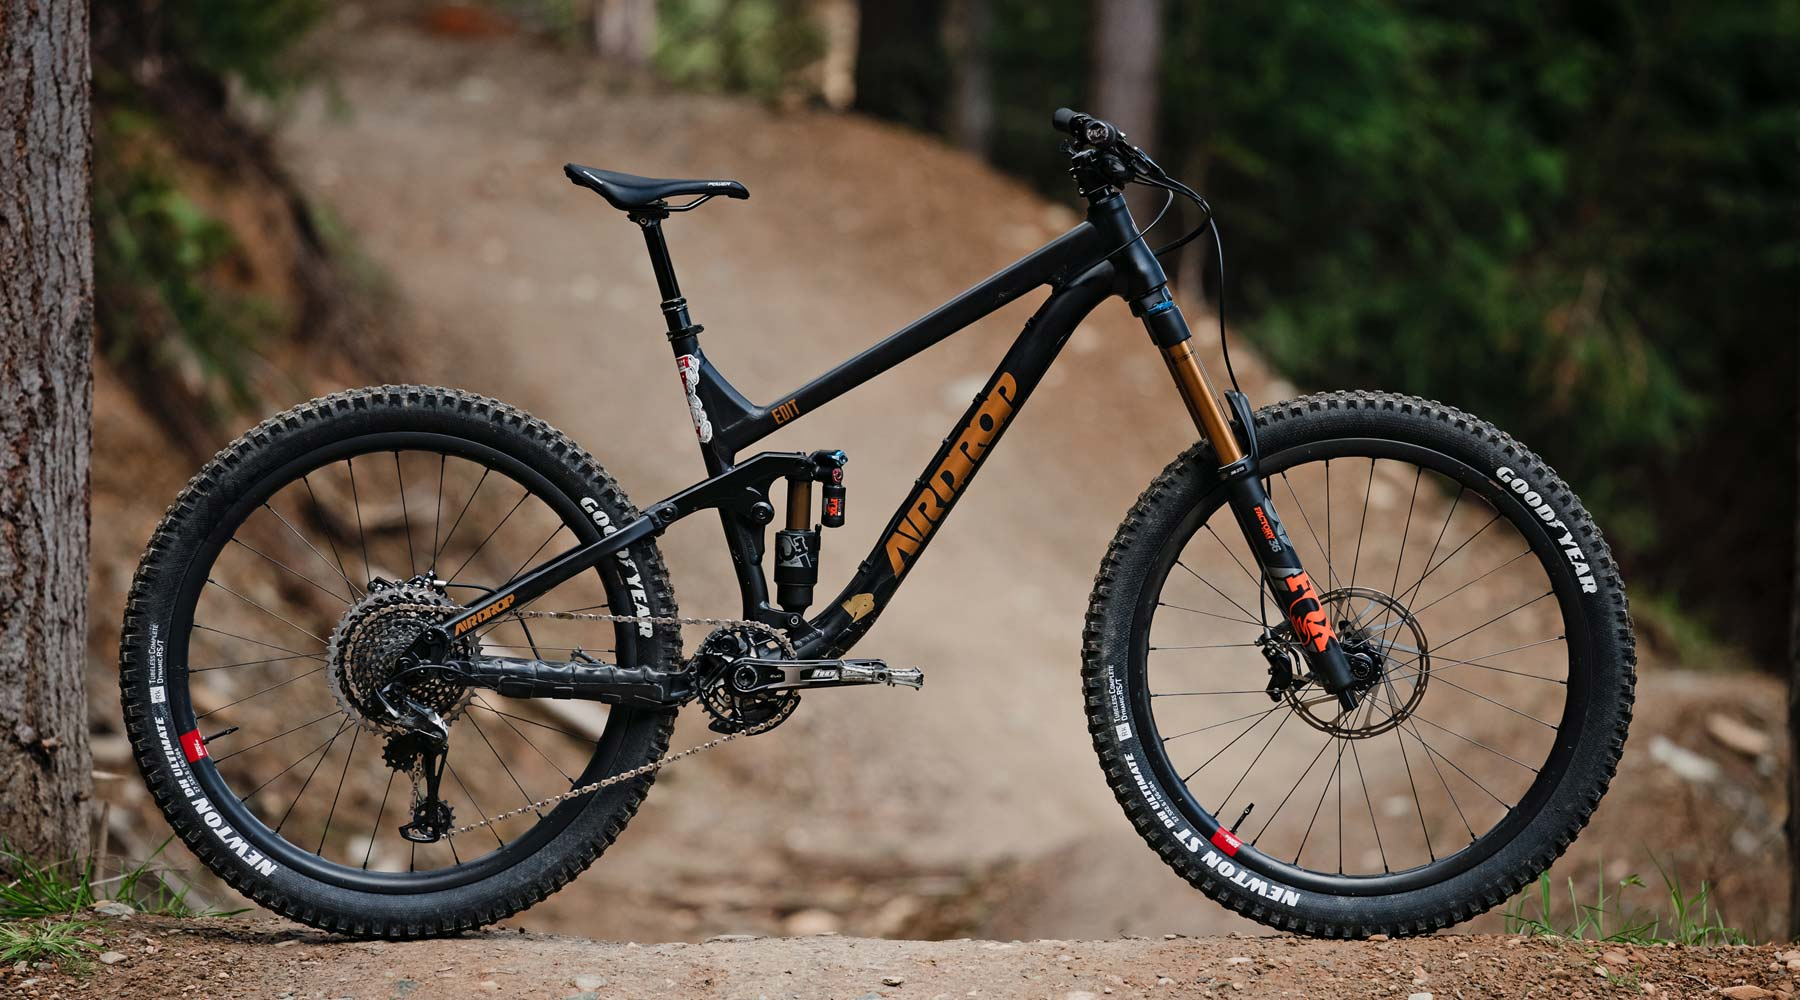 Bike Check: KC's Edit v3